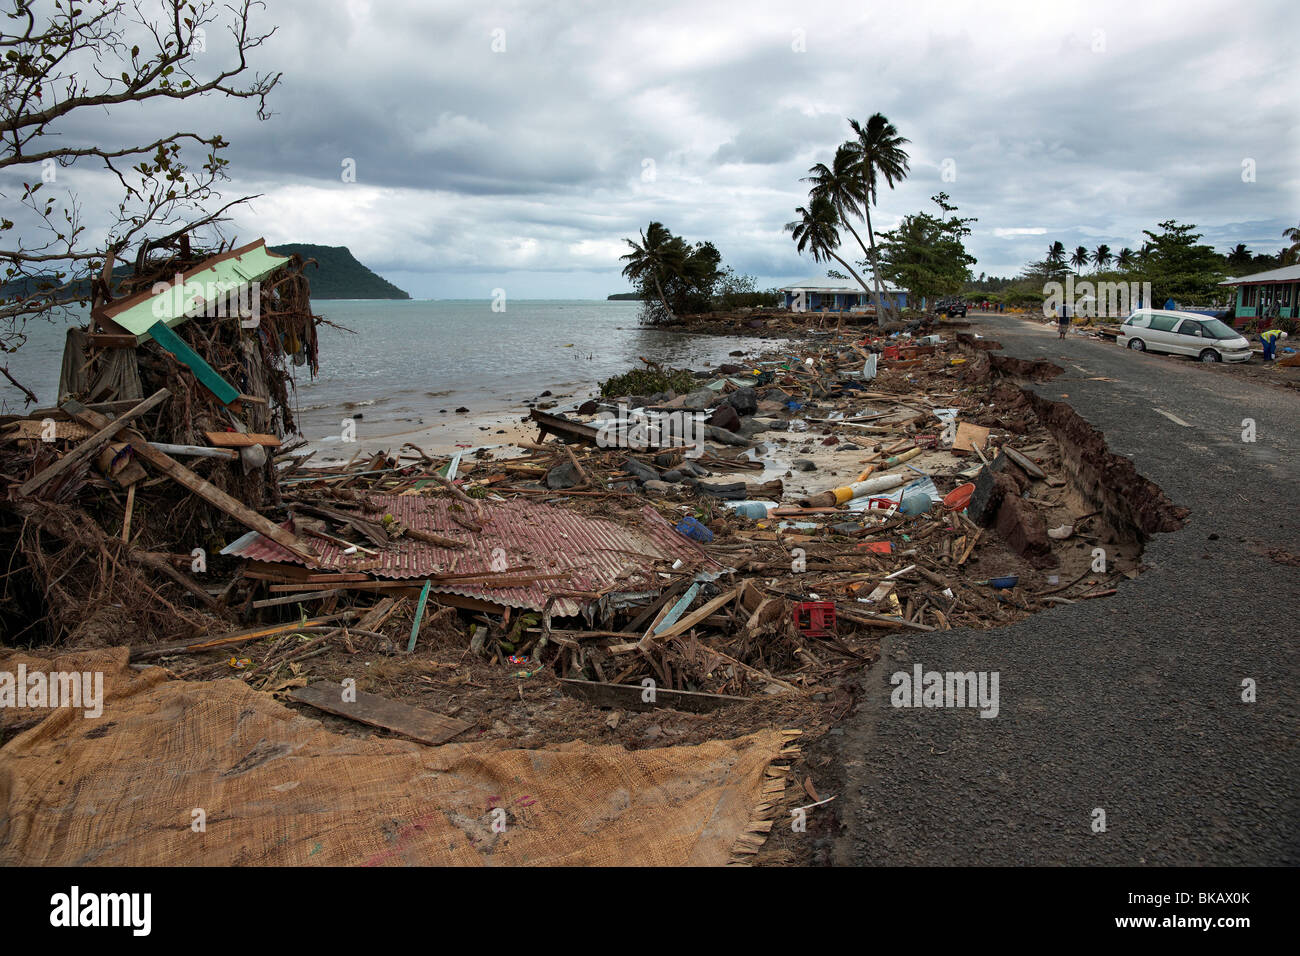 Shoreline and building destruction from 2009 tsunami, Aleipata, Upolu island, Samoa - Stock Image